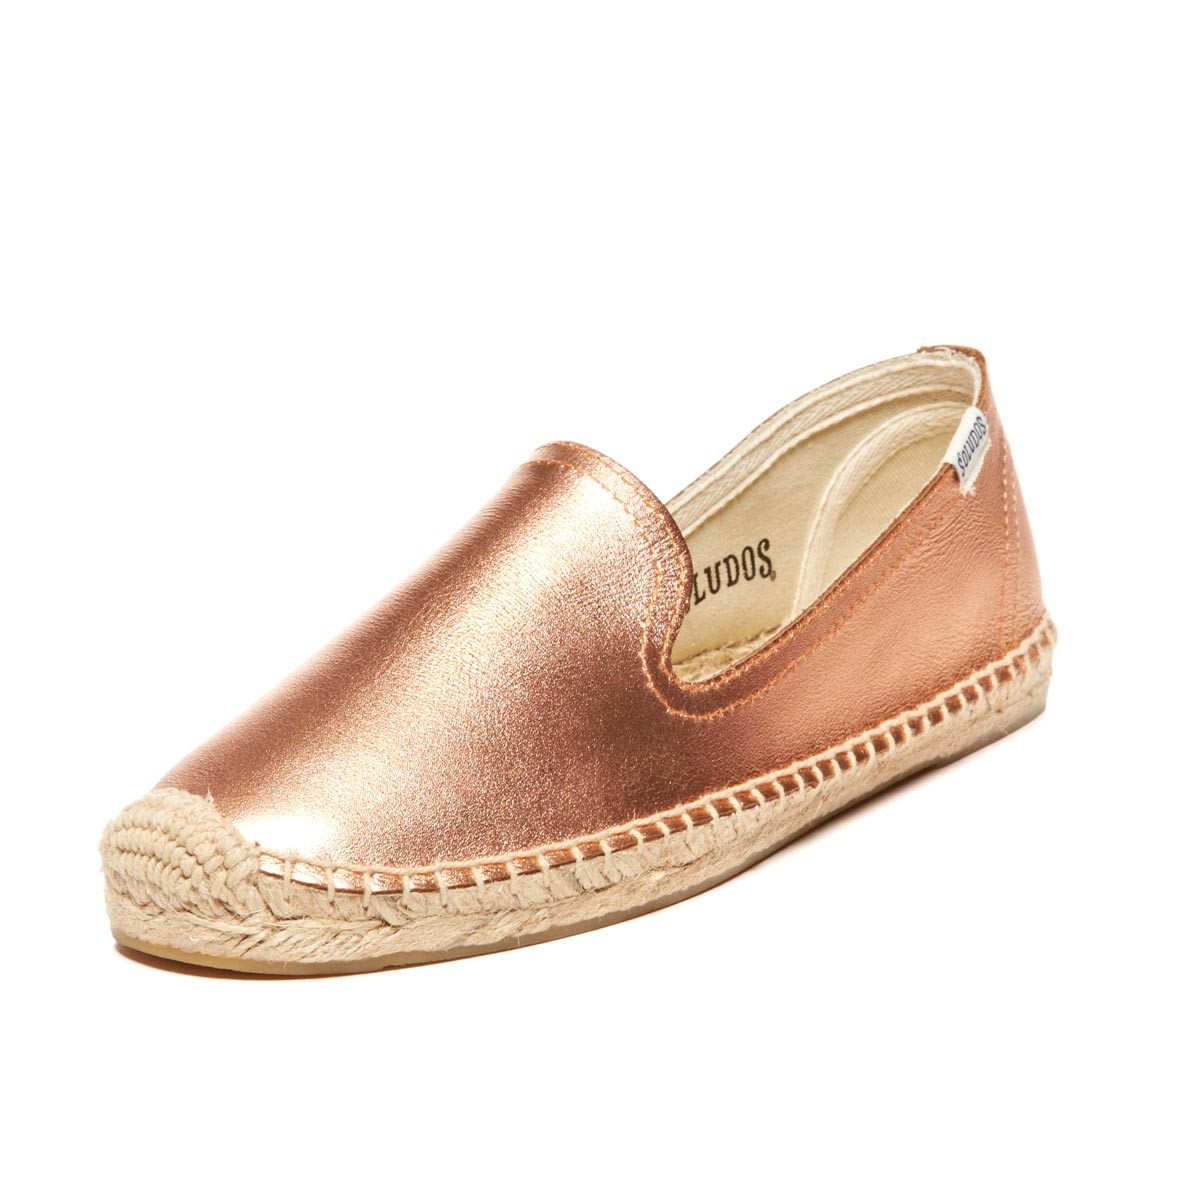 b9a09bd6795 Soludos Jupiter Leather Smoking Slipper in Pink - Lyst